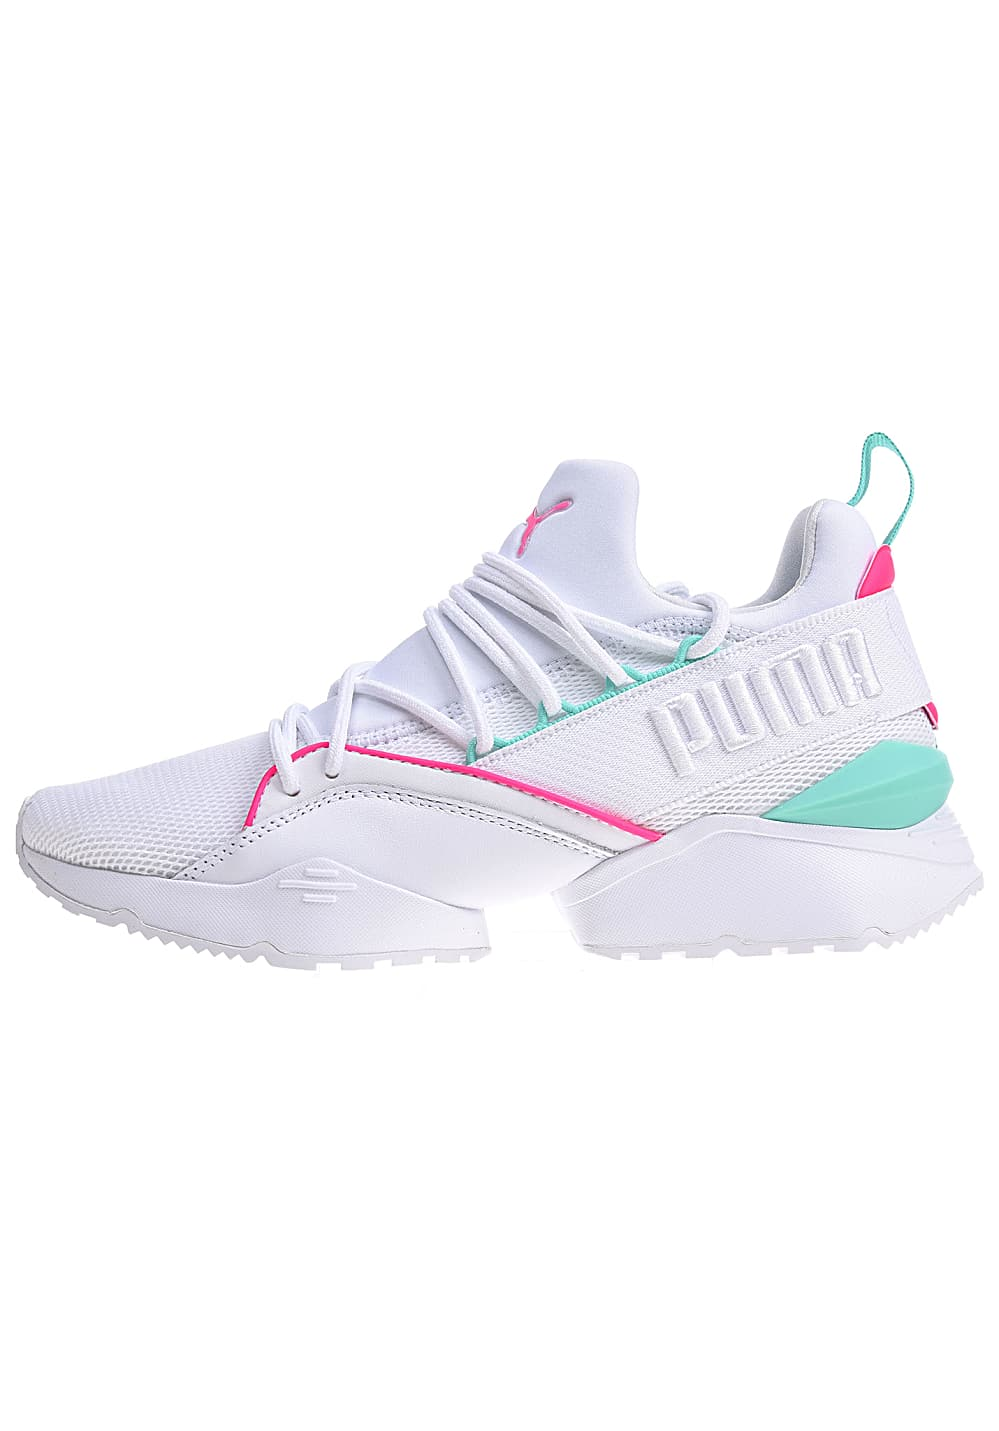 f8d5c43a Puma Muse Maia Street 1 - Sneakers for Women - White